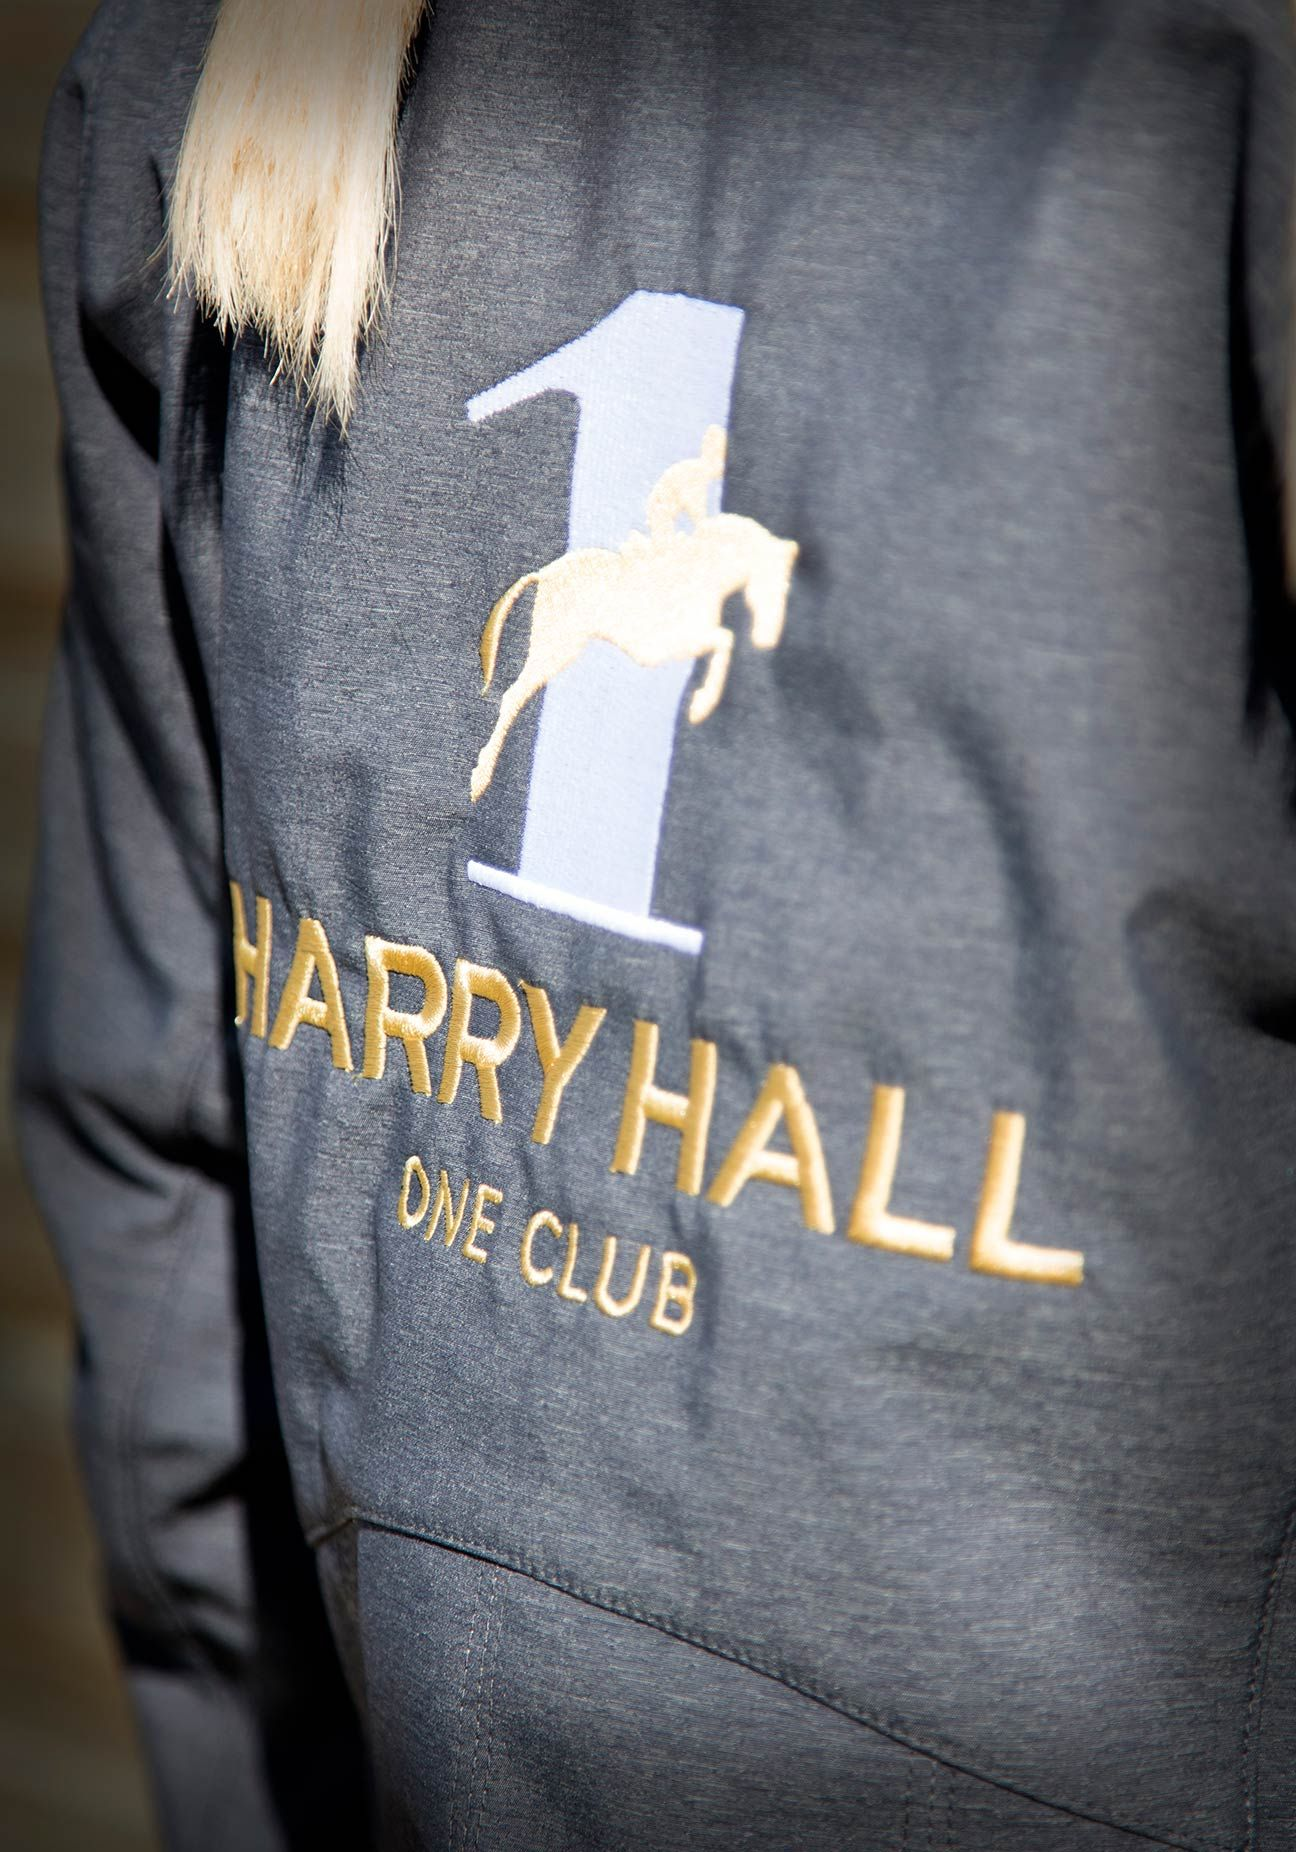 Harry Hall Sweater